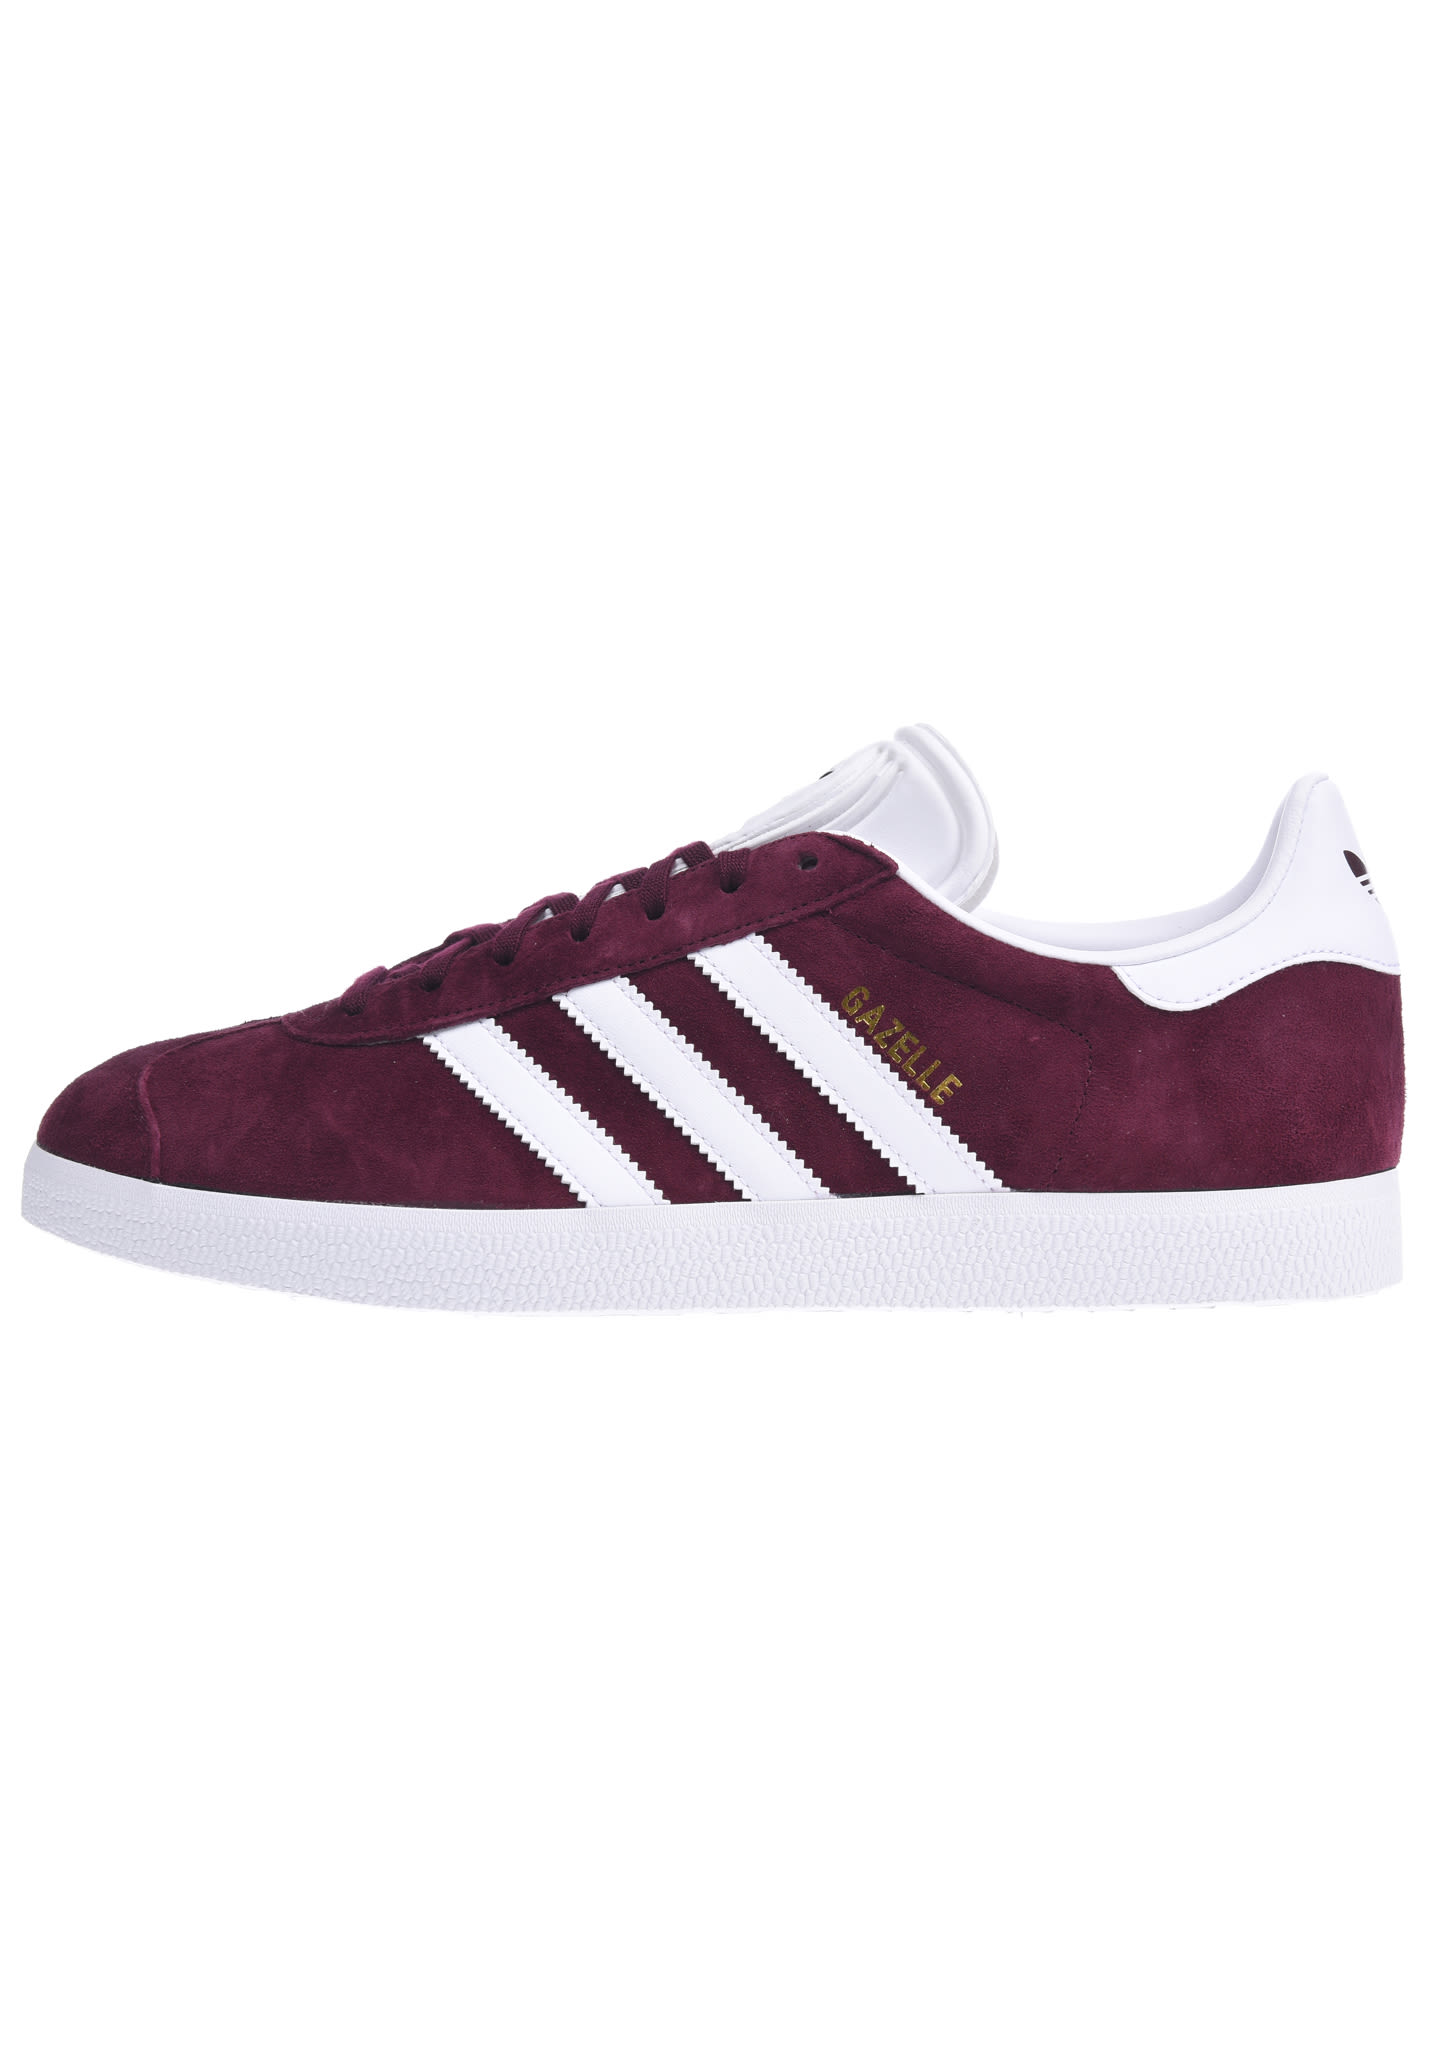 pretty nice d5704 1f020 adidas Originals Gazelle - Sneaker - Rot - Planet Sports